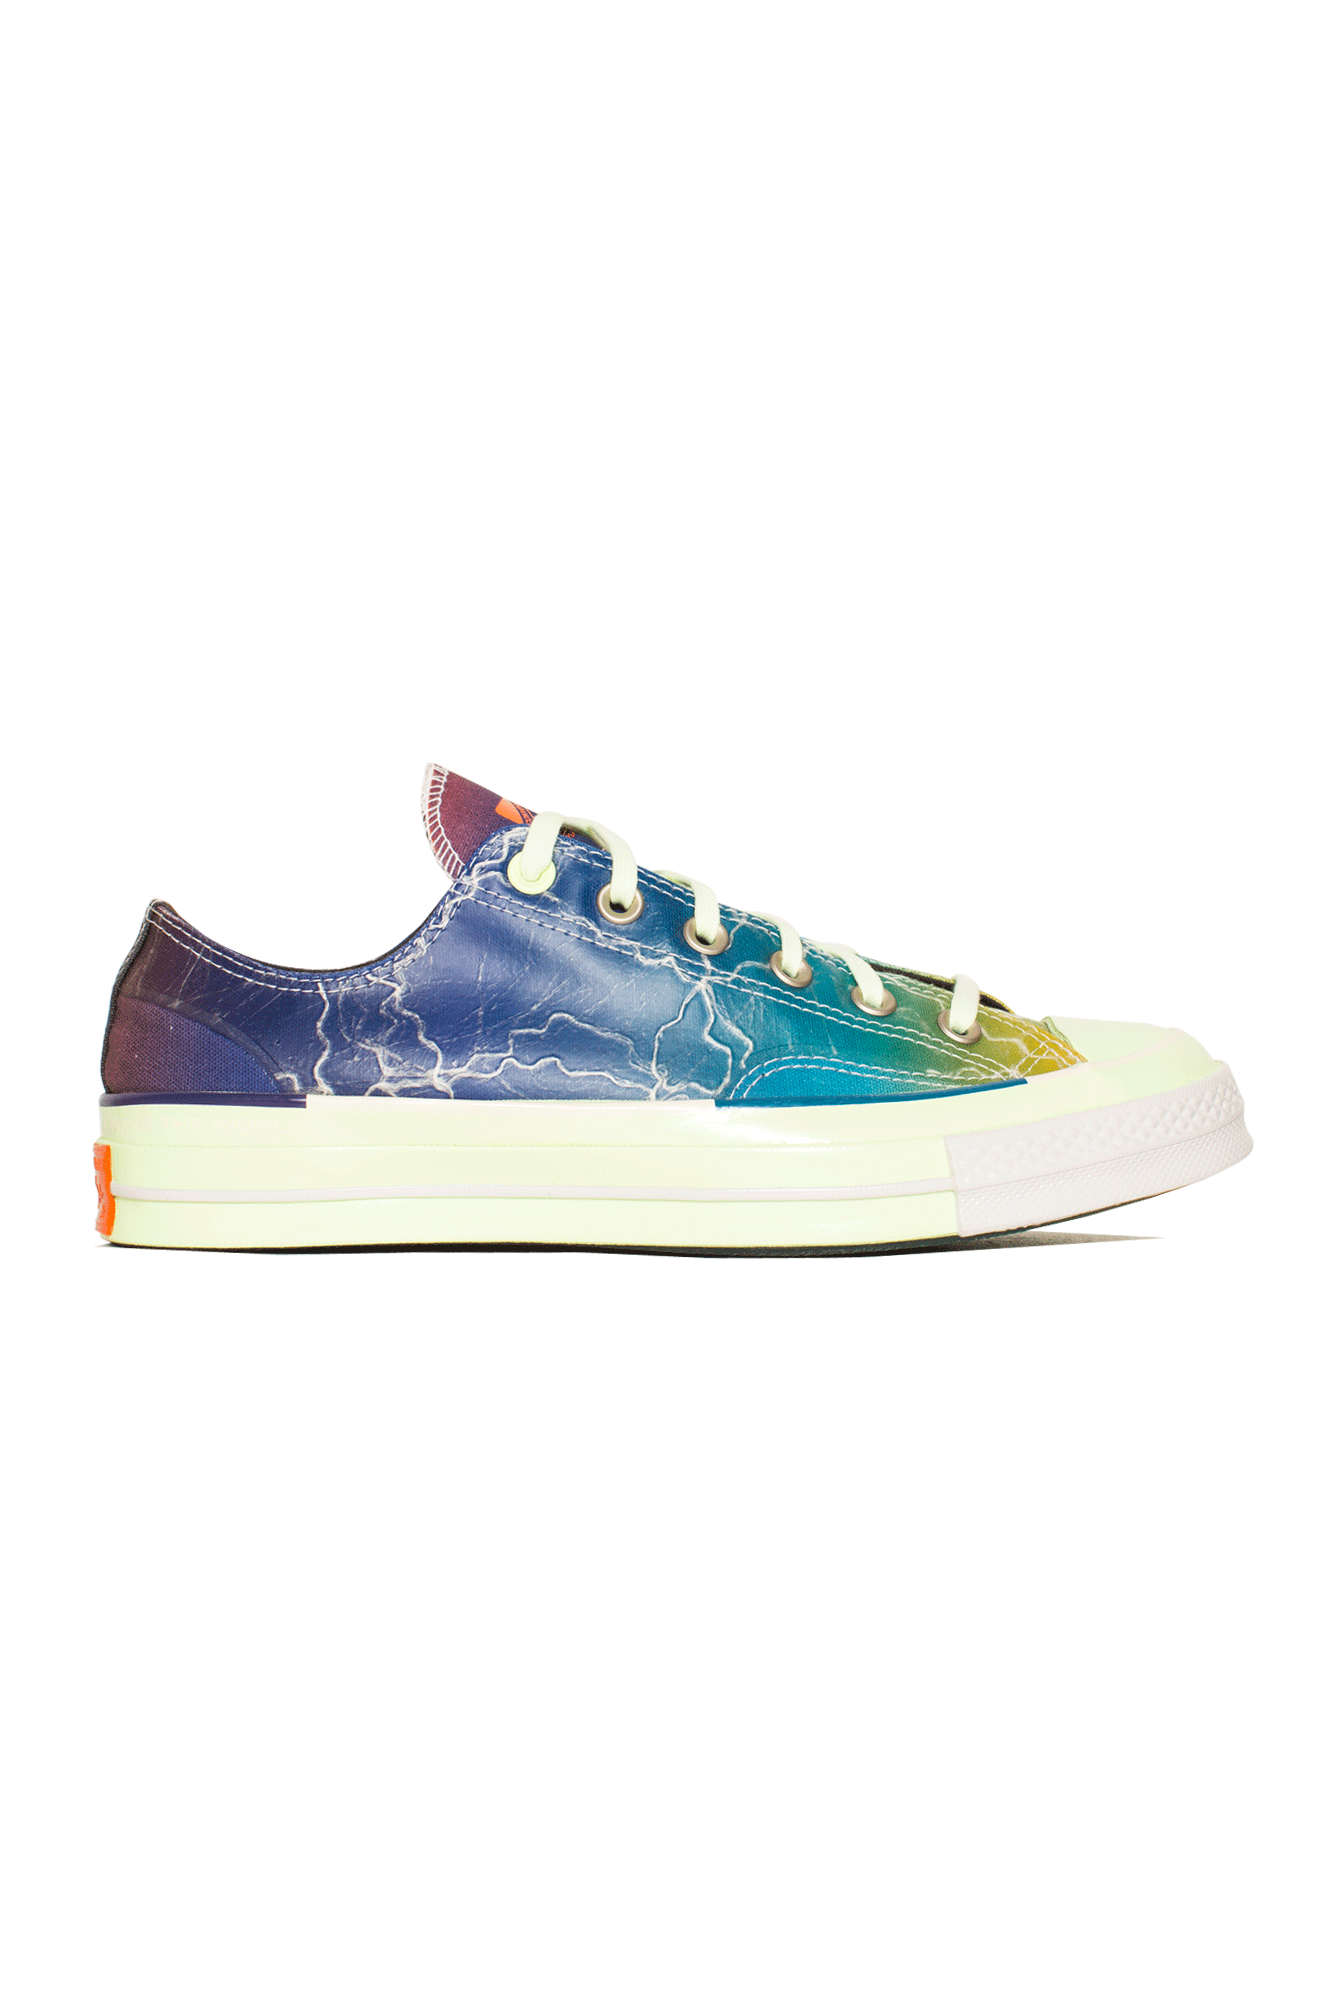 Converse Sneakers Chuck 70 OX x Pigalle Multicolor 165747C#000#027#4,5 - One Block Down